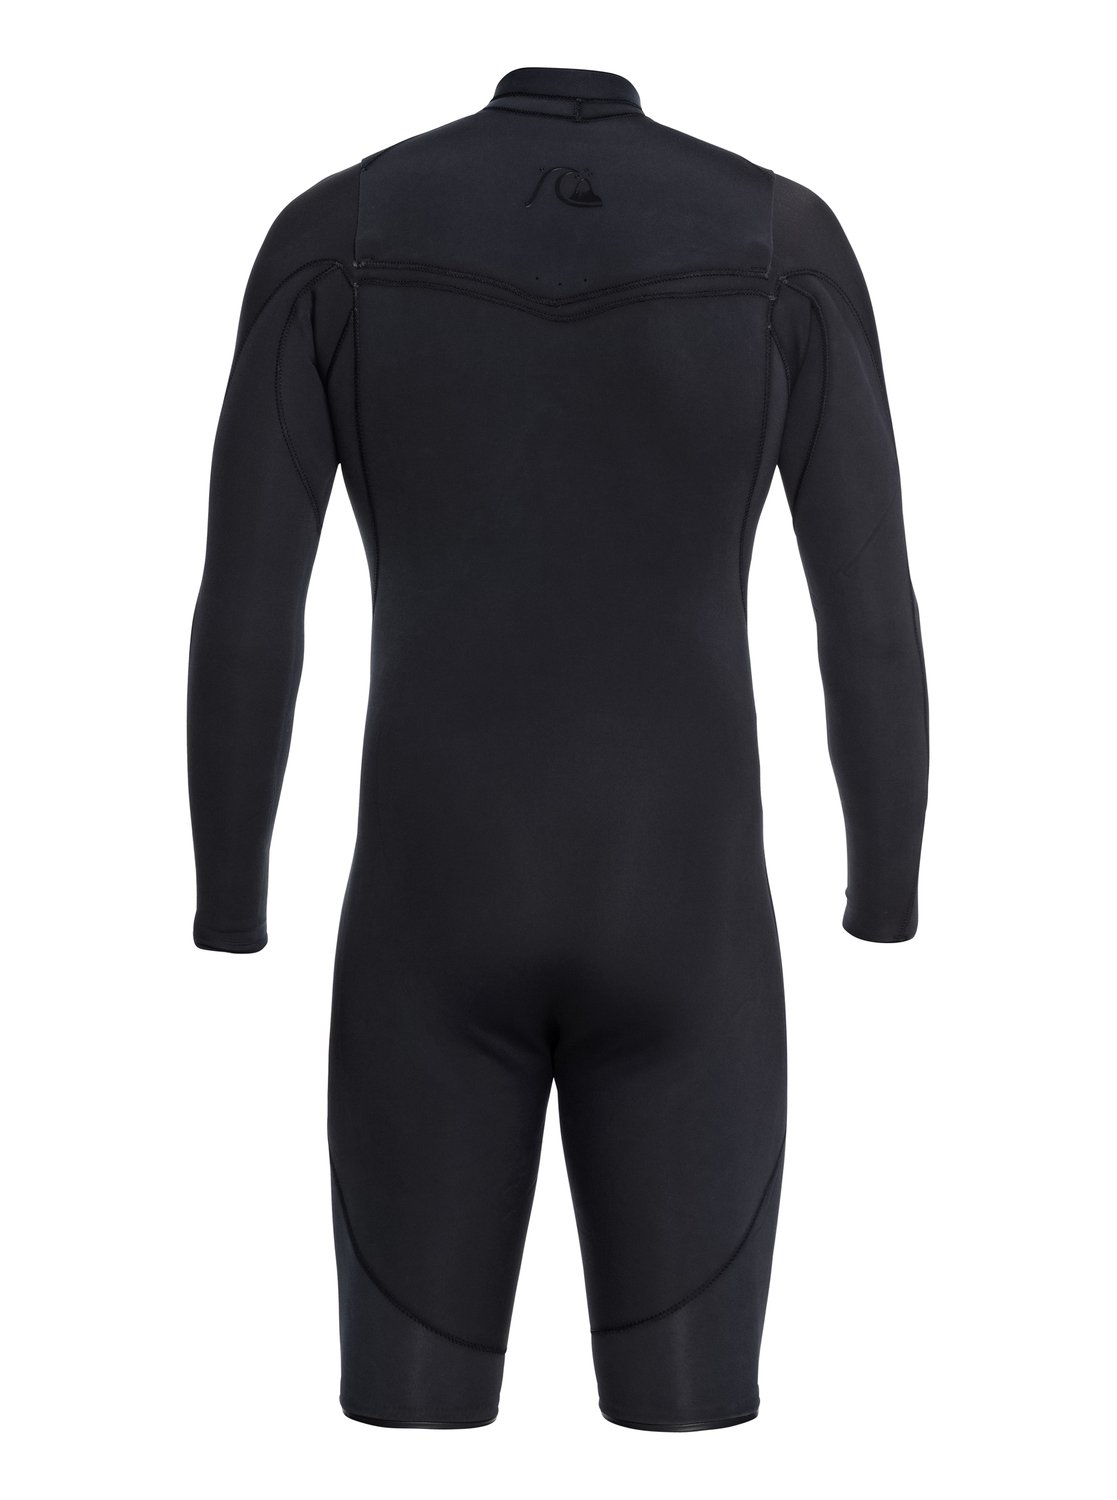 Quiksilver™ 2 2mm Highline Limited - Long Sleeve Chest Zip ... fb94b698c